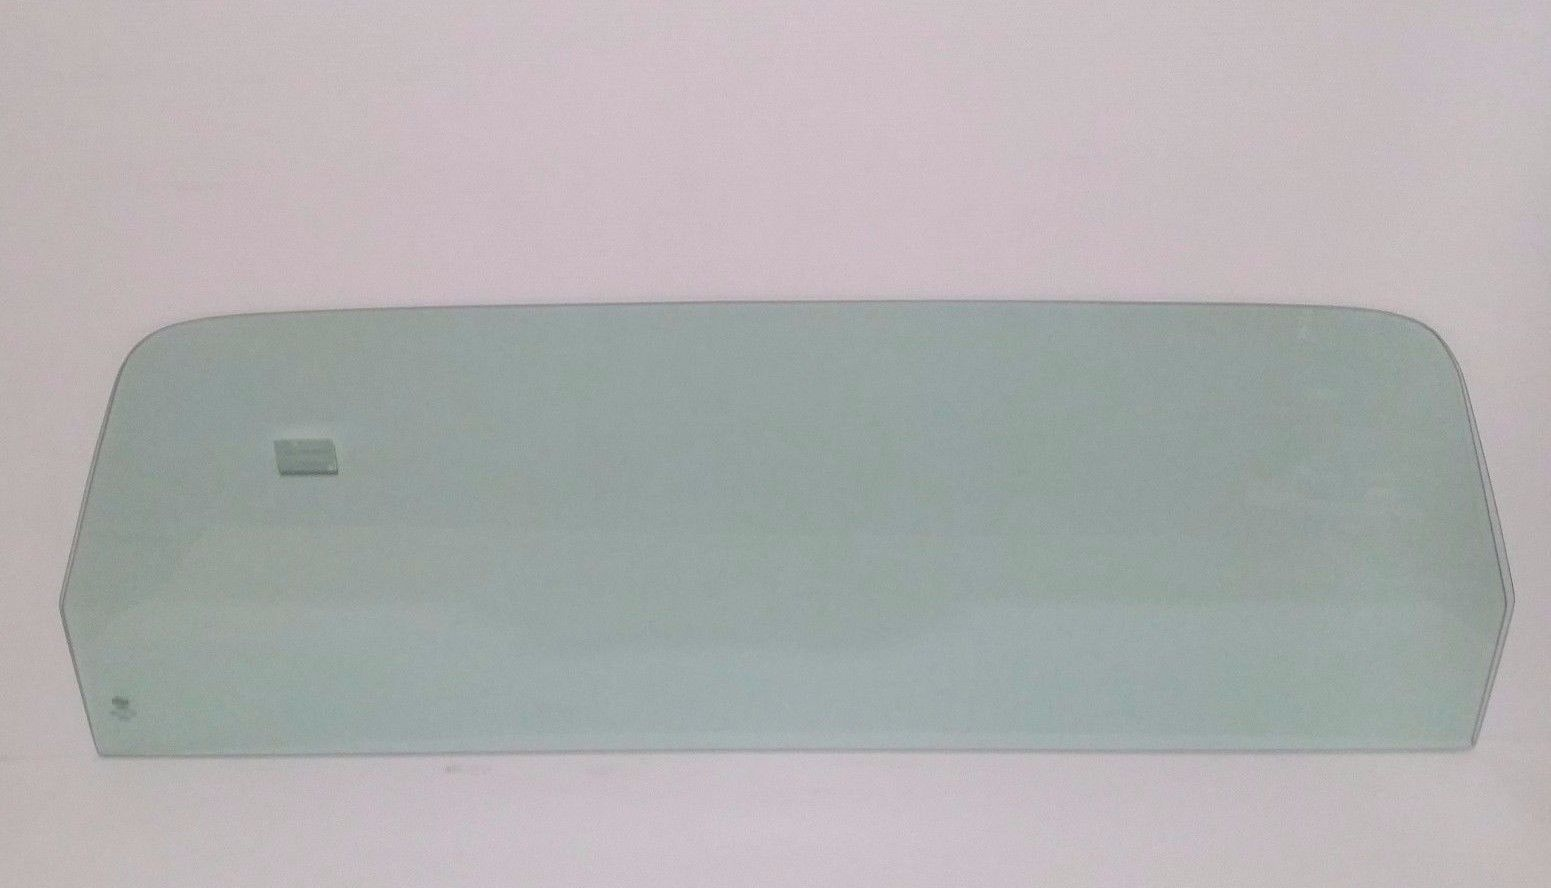 1973-1991 Chevy Blazer & GMC Jimmy Rear Back Glass / Tailgate Window